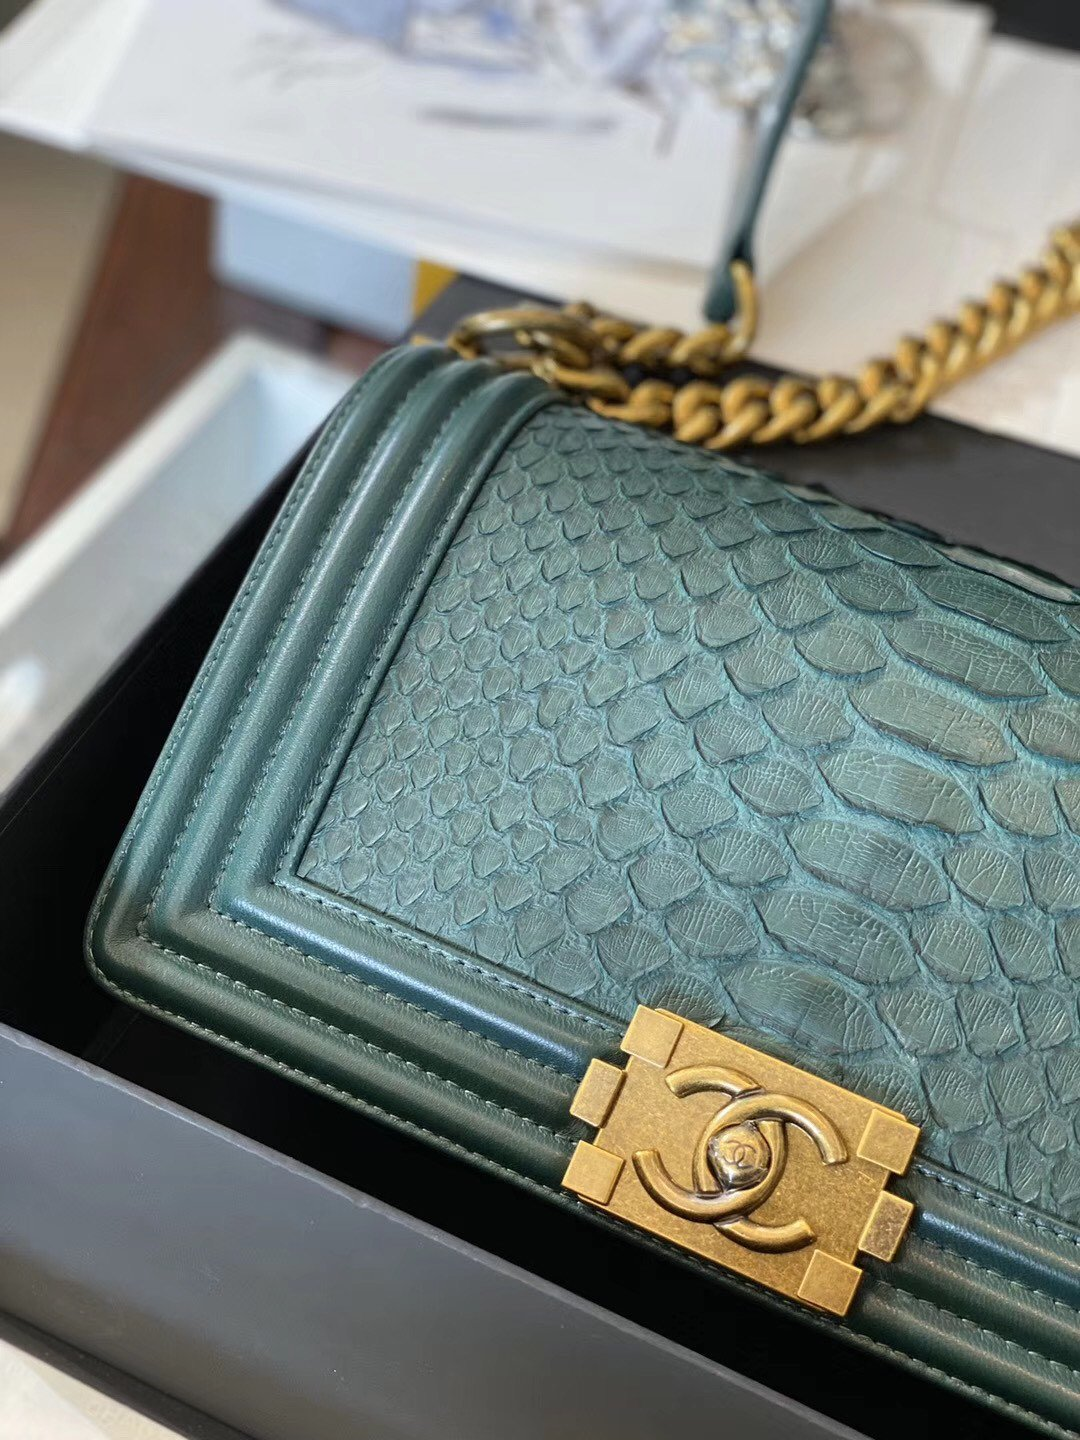 Replica Boy Chanel Bag South African Python Skin with Imported Sheepskin 020